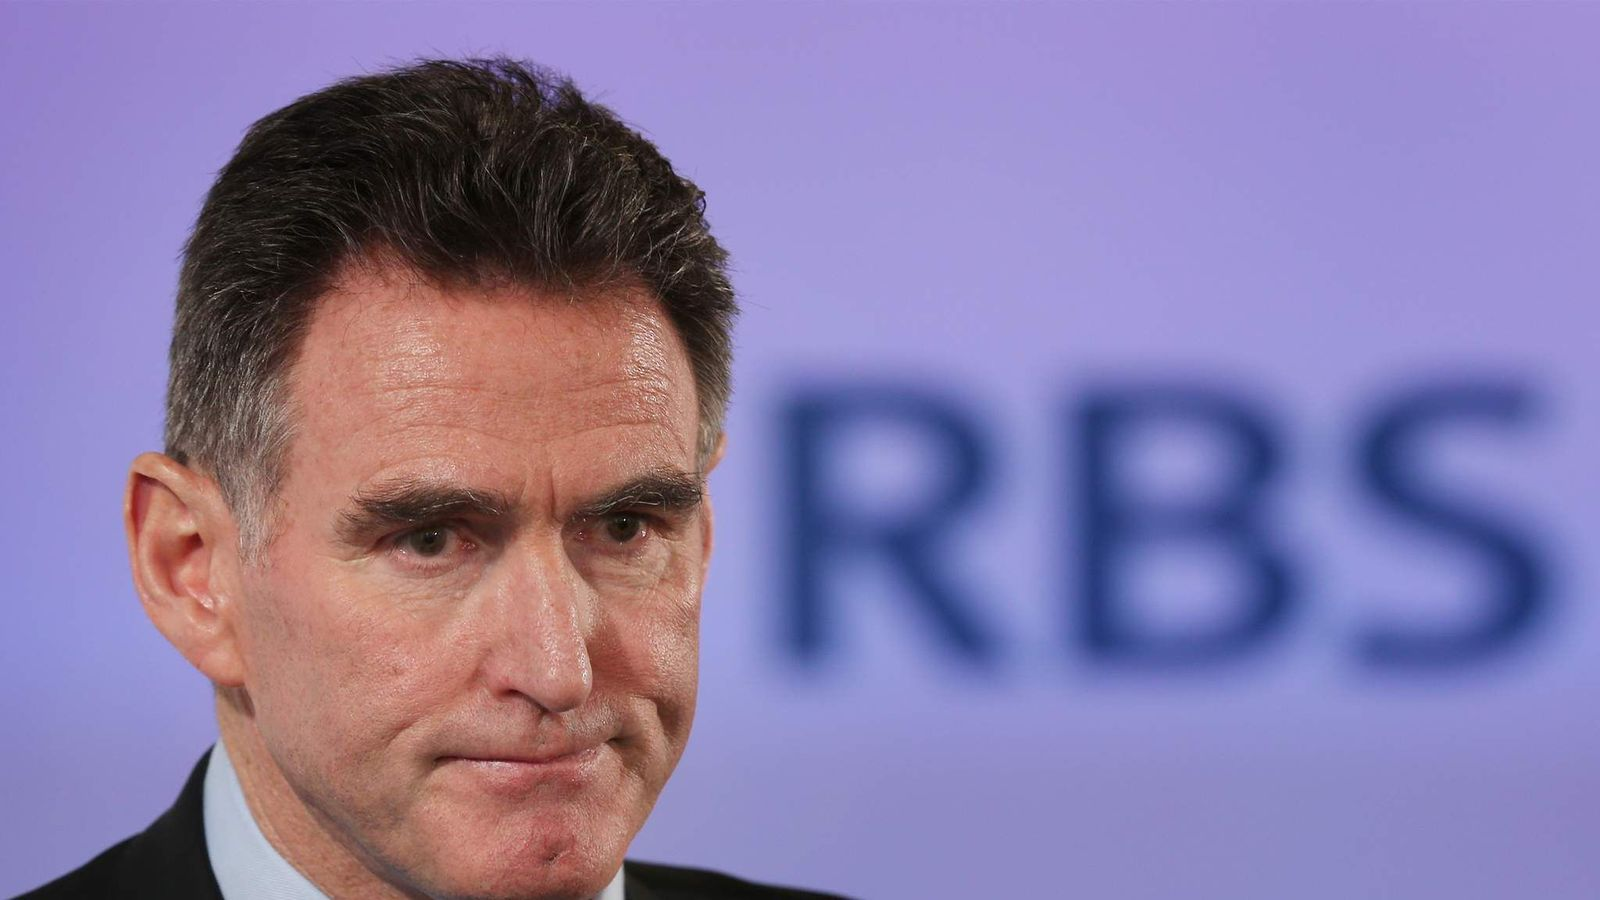 Royal Bank of Scotland reports its biggest annual loss for 2013